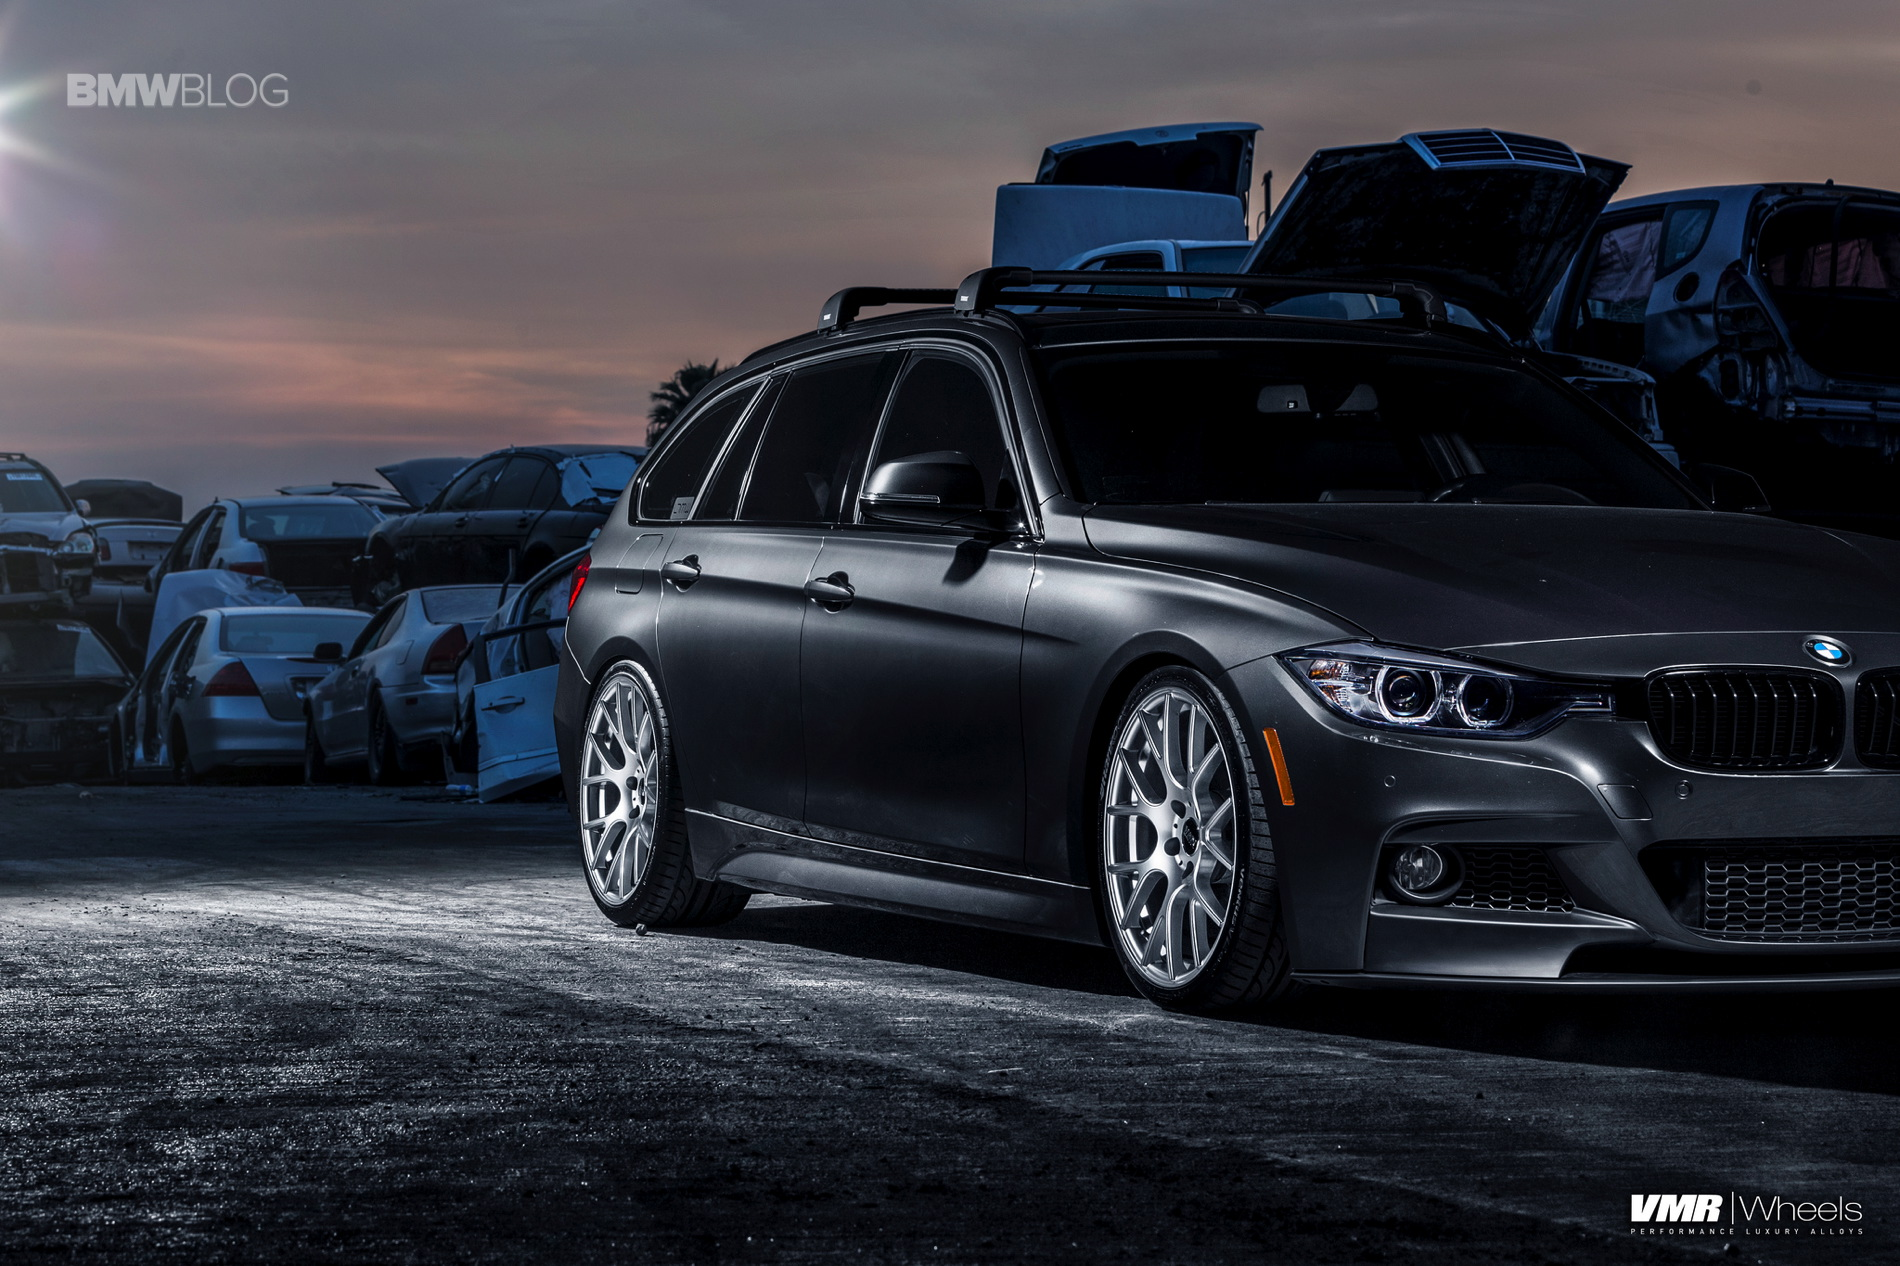 Bmw F31 Sports Wagon Gets Some Visual Upgrades And Custom